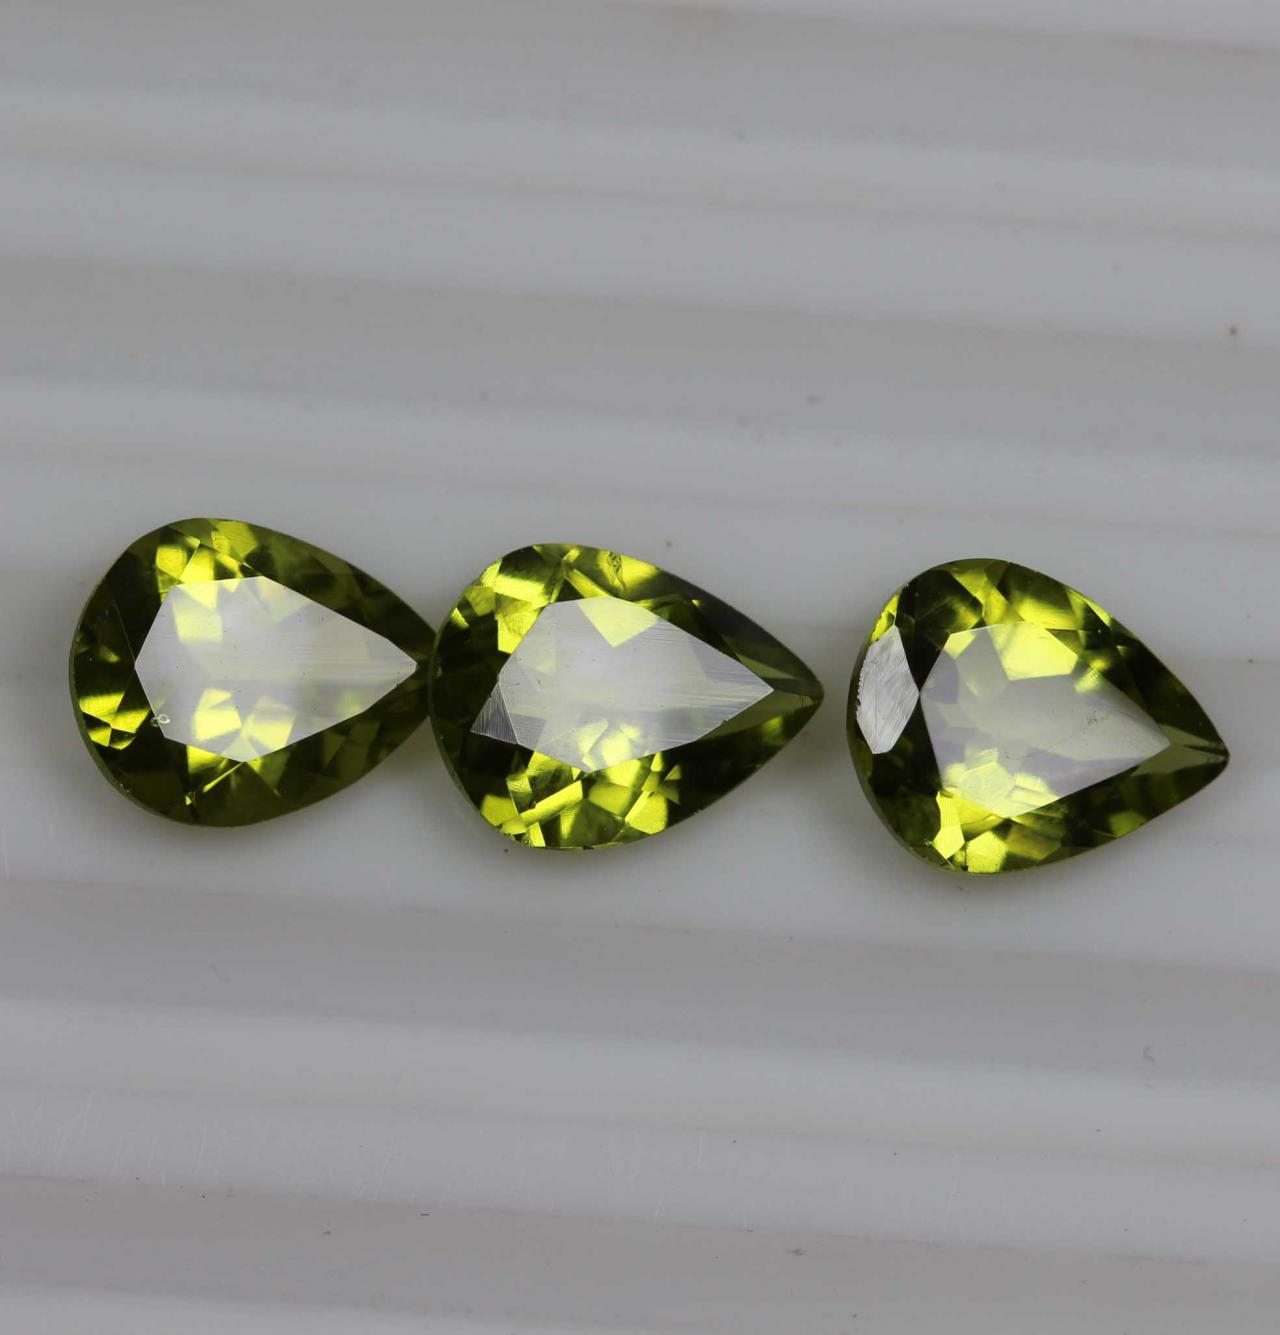 6x8mm Natural Peridot Faceted Cut Pear 25 Pieces Lot Calibrated Size VS Quality Green Color Loose Gemstone